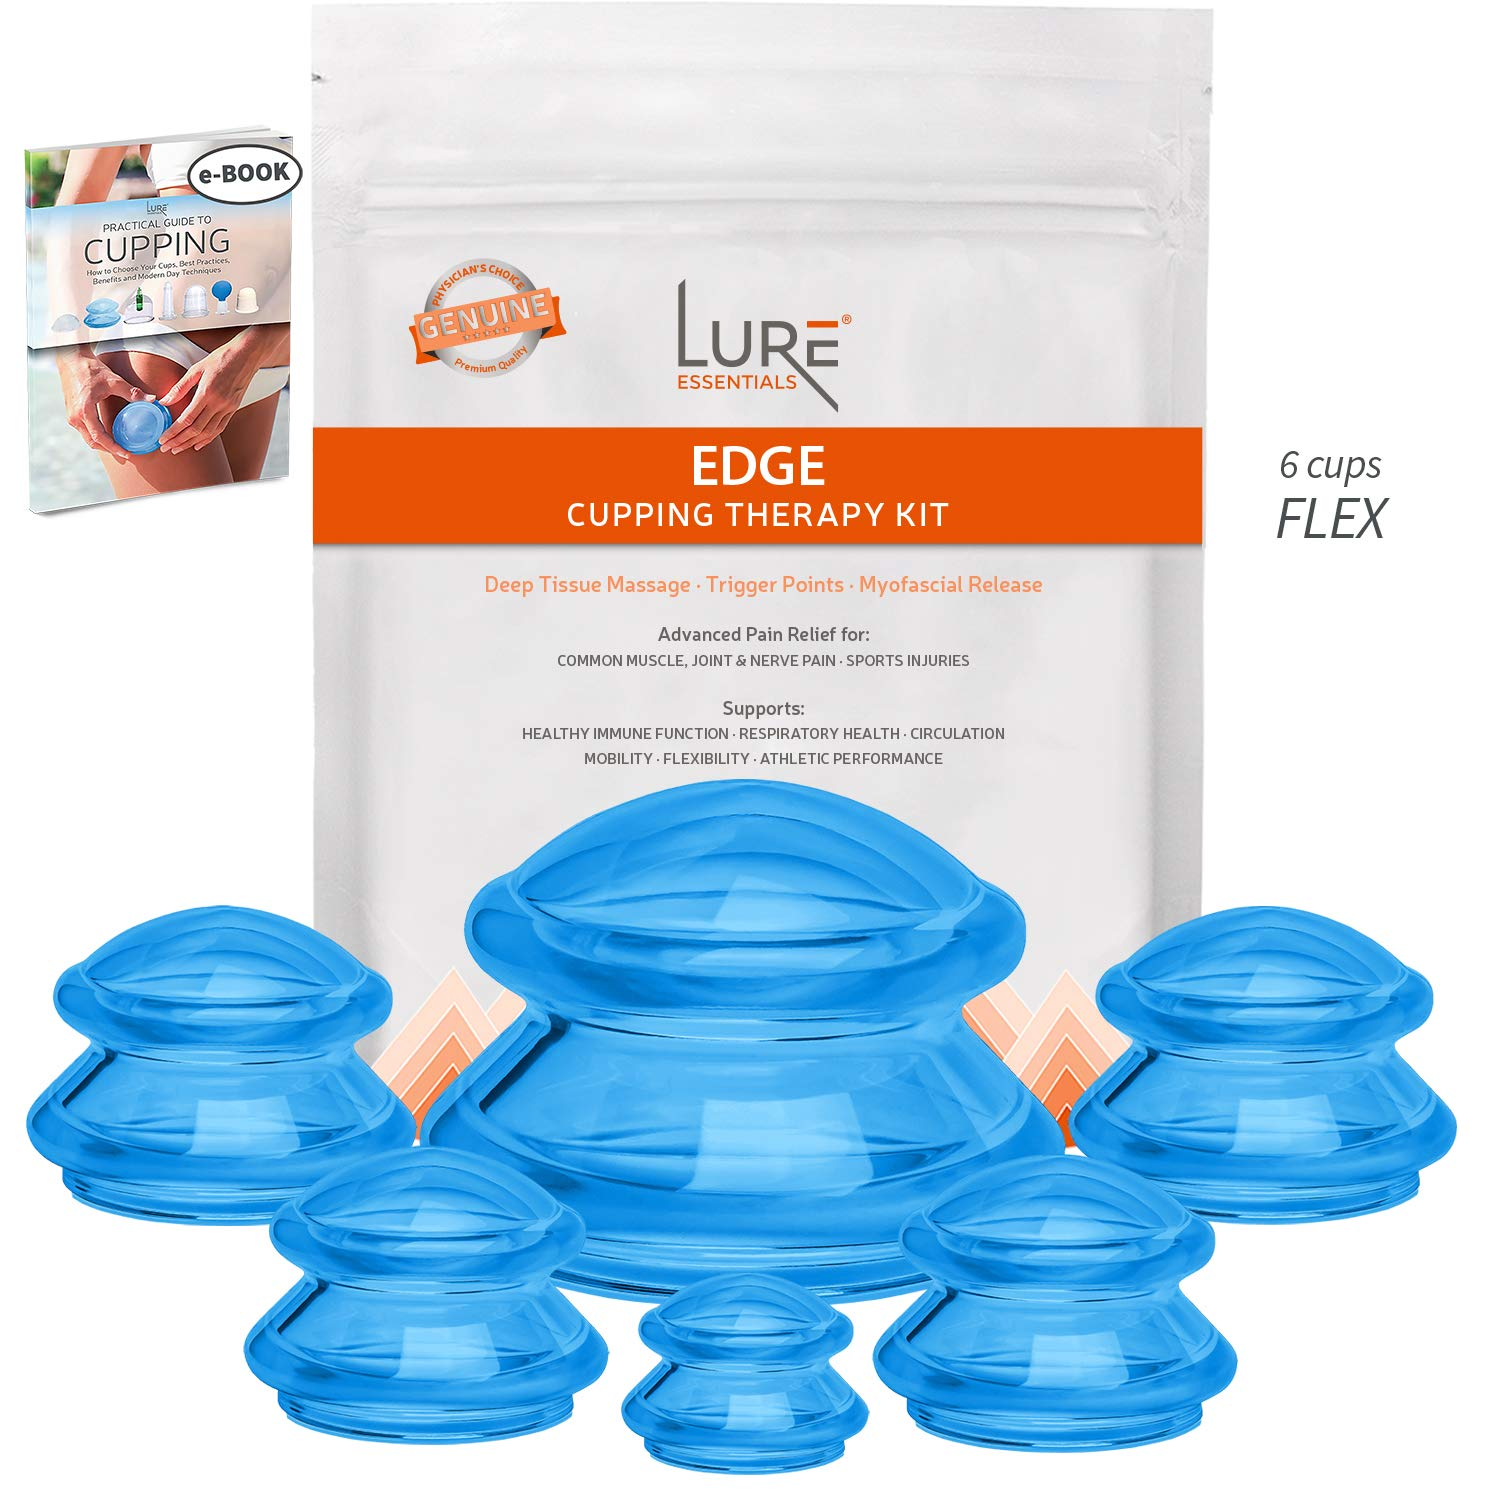 Edge Cupping Therapy Sets - Silicone Vacuum Suction Cupping Cups - Muscle, Nerve, Joint Pain Relief (Blue) by Lure Essentials